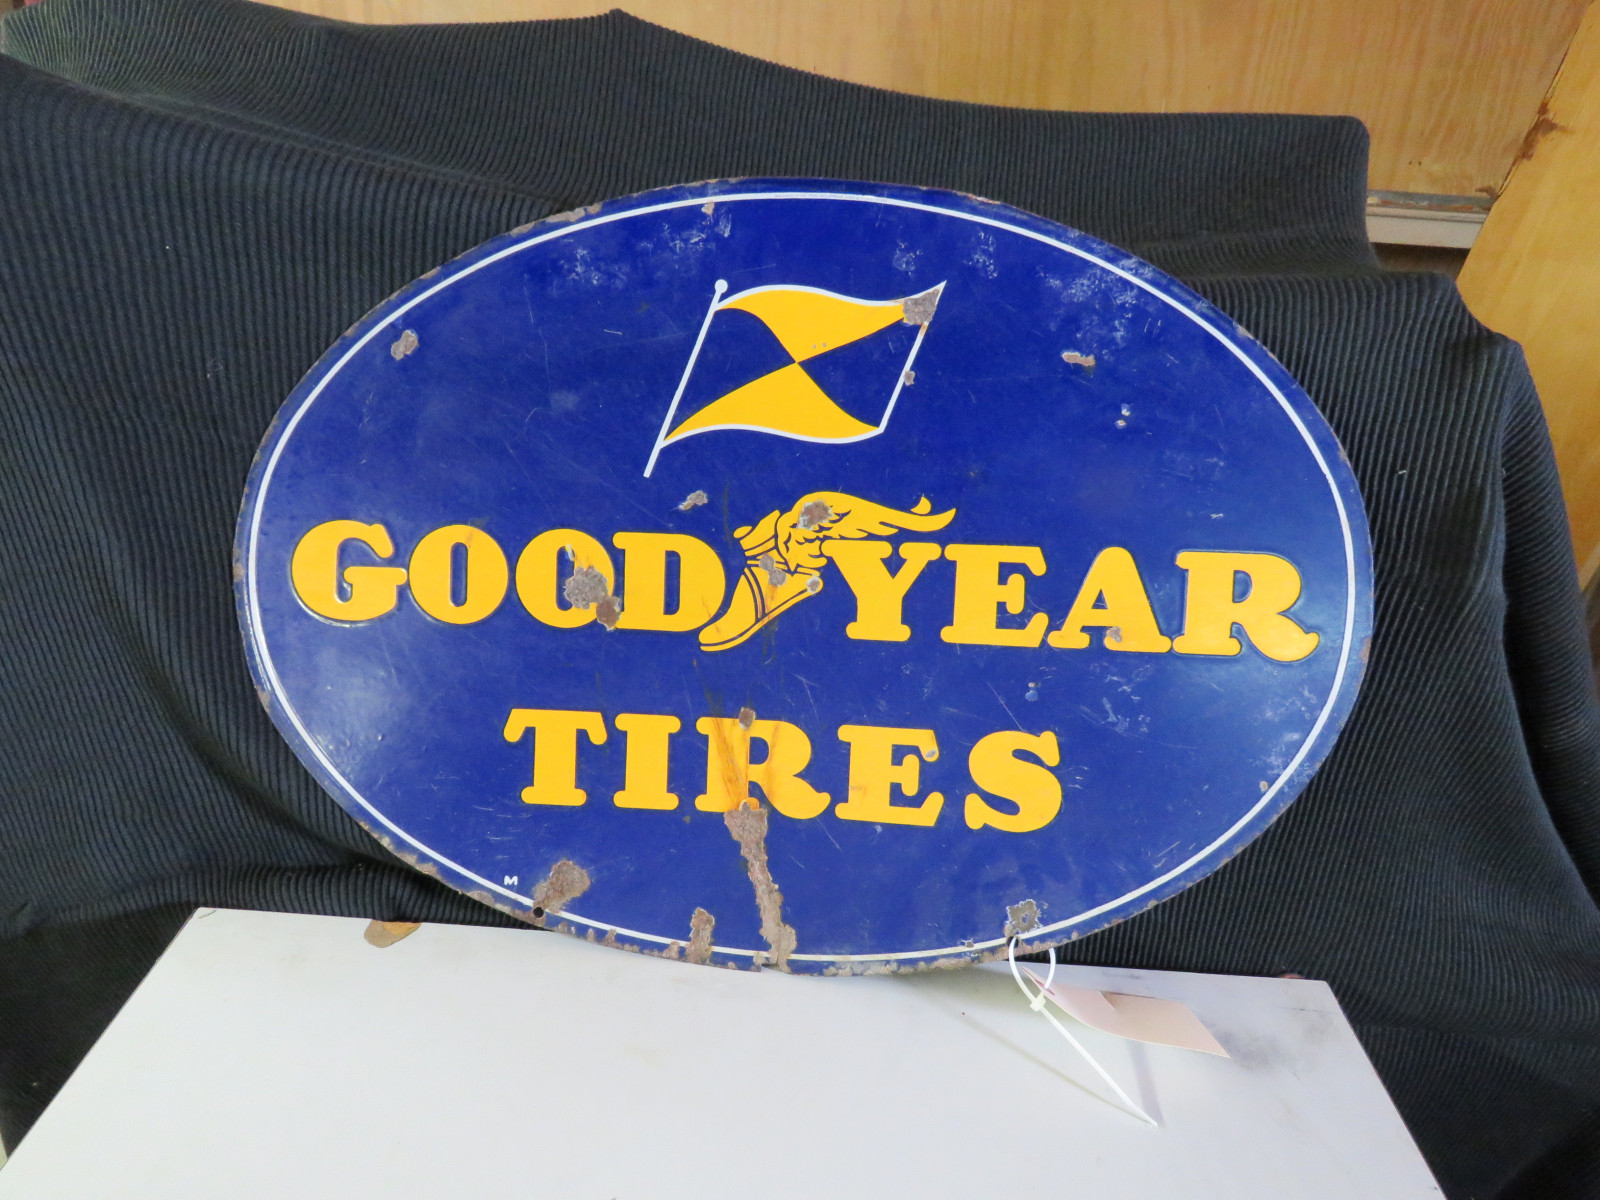 Goodyear Porcelain Sign - Image 2